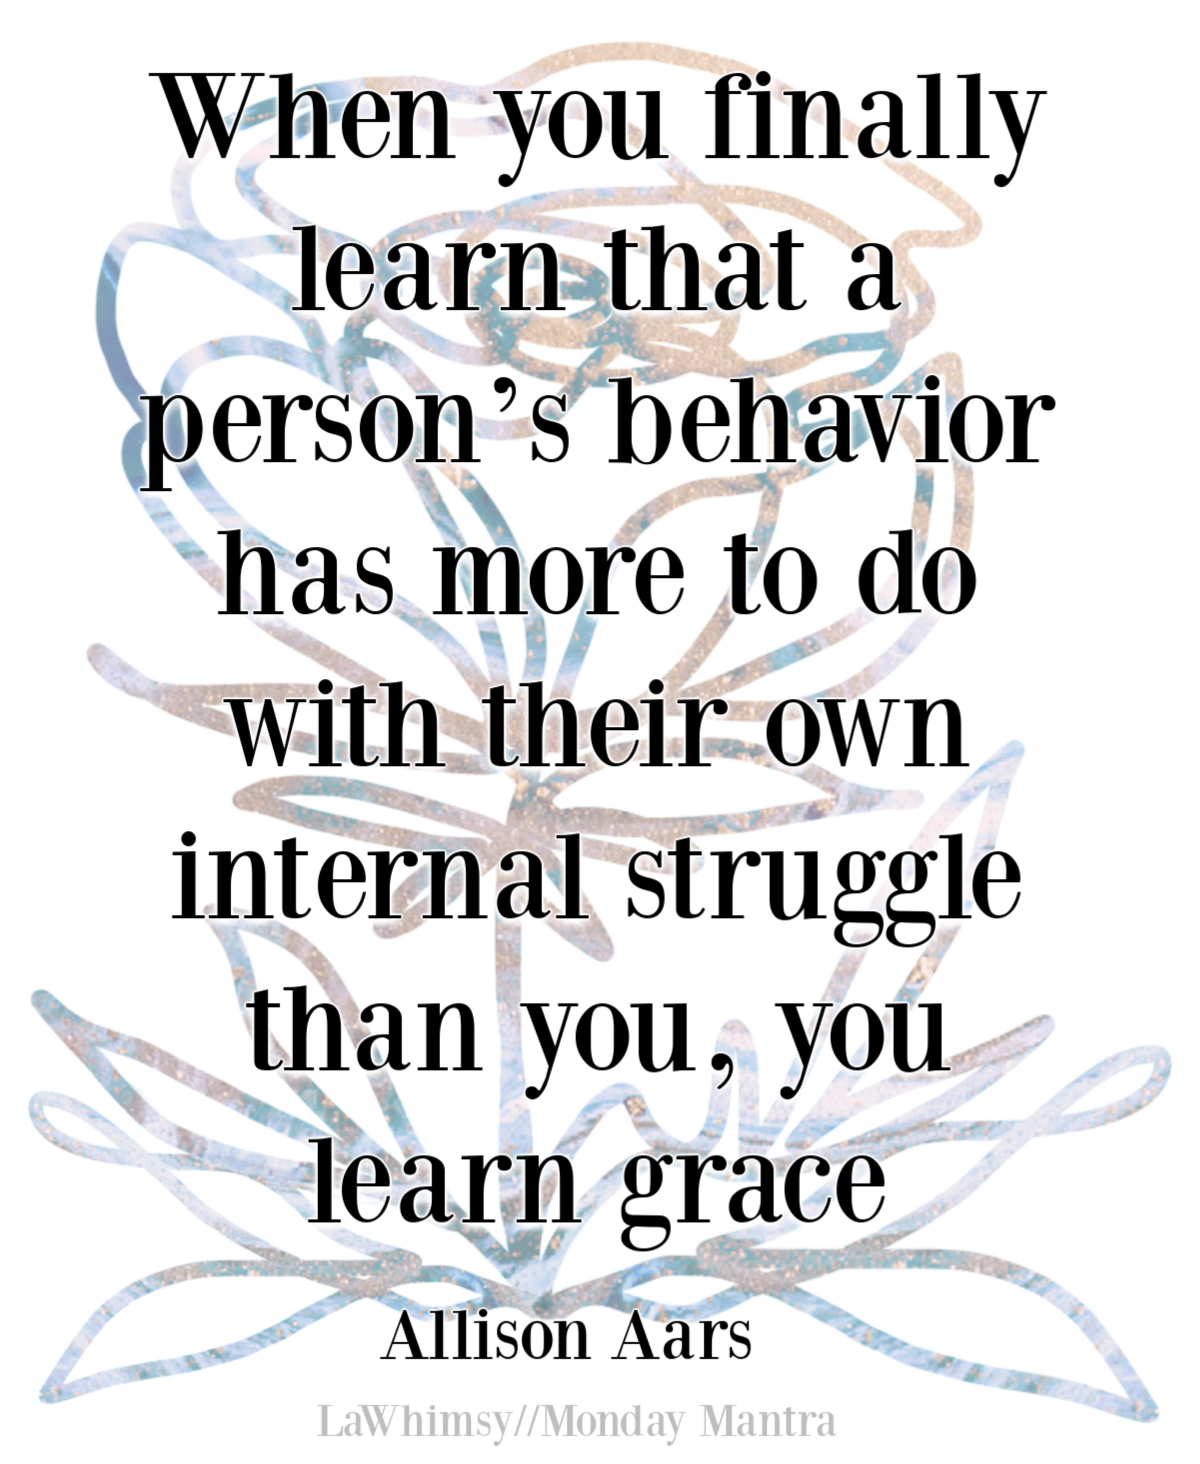 When you finally learn that a person's behavior has more to do with their own internal struggle than you, you learn grace Allison Aars quote Monday Mantra 294 via LaWhimsy